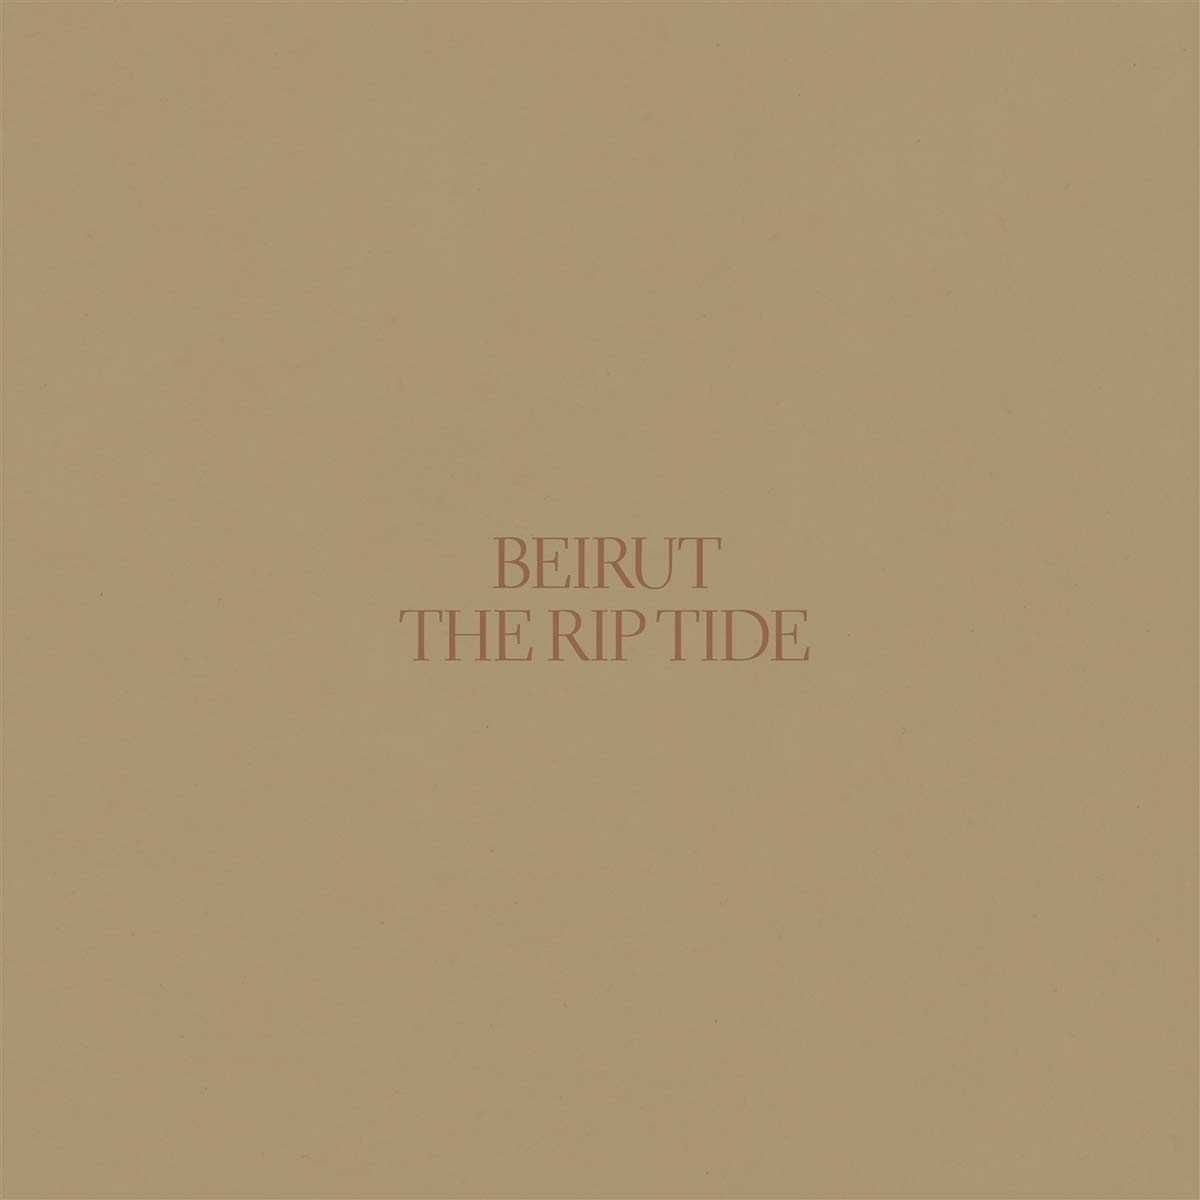 Beirut, The Rip Tide